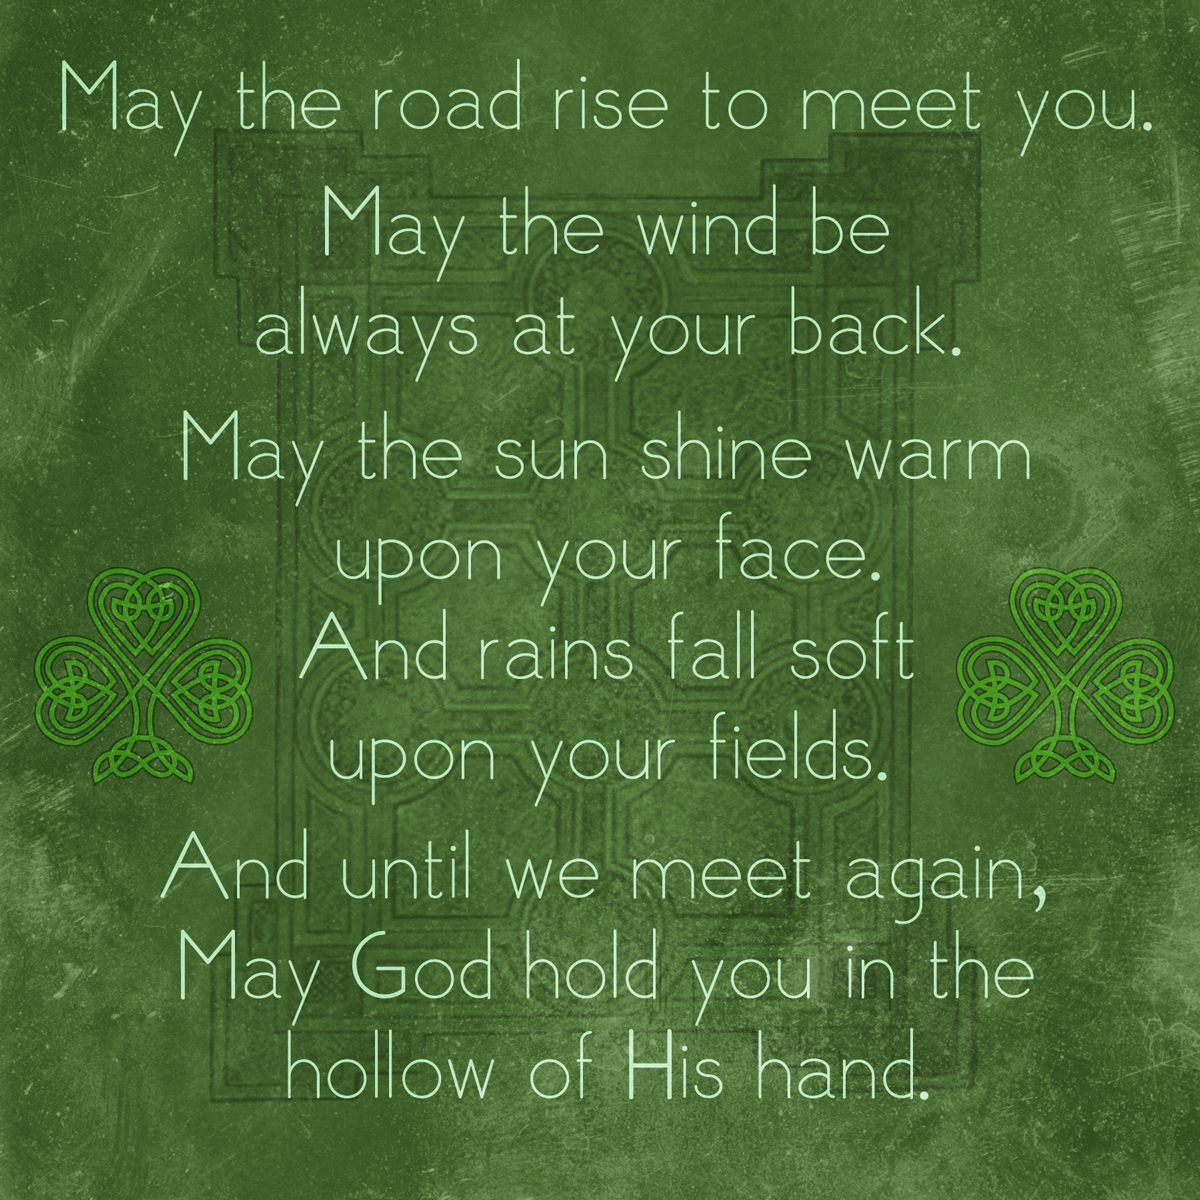 Happy St Patrick S Day Everyone St Patrick Is A Christian Missions Hero If You Didn T Know Glad To Celebrate Christian Missions March Bulletin Board Words